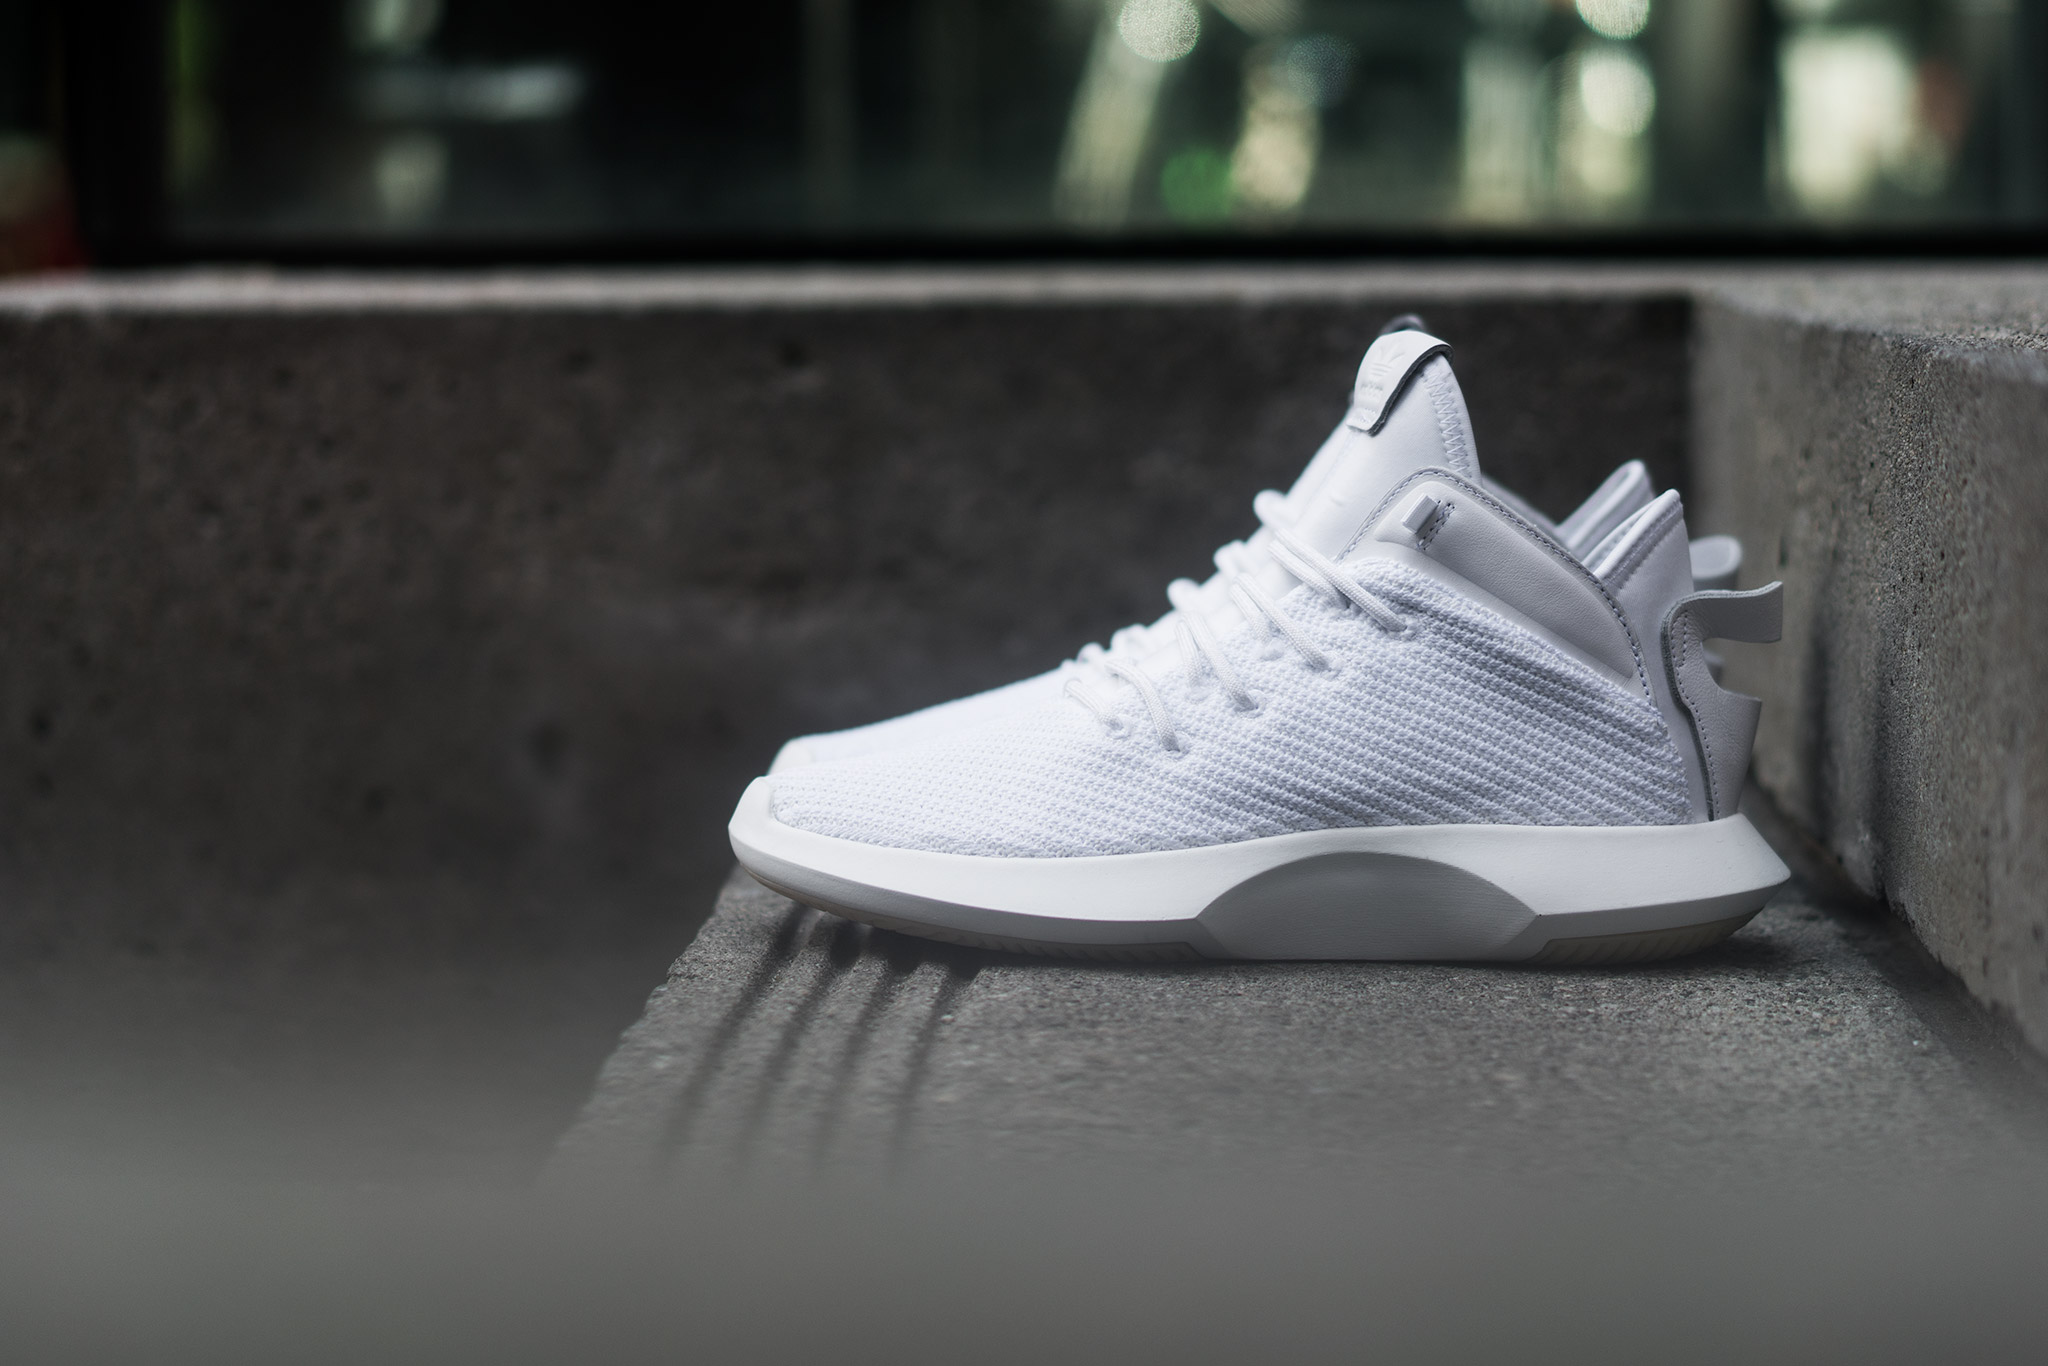 huge discount 36cdd d554b Release Information The adidas Crazy 1 ADV will release in-store at HAVEN  Toronto and HAVEN Vancouver on September 2nd at 11AM local time.